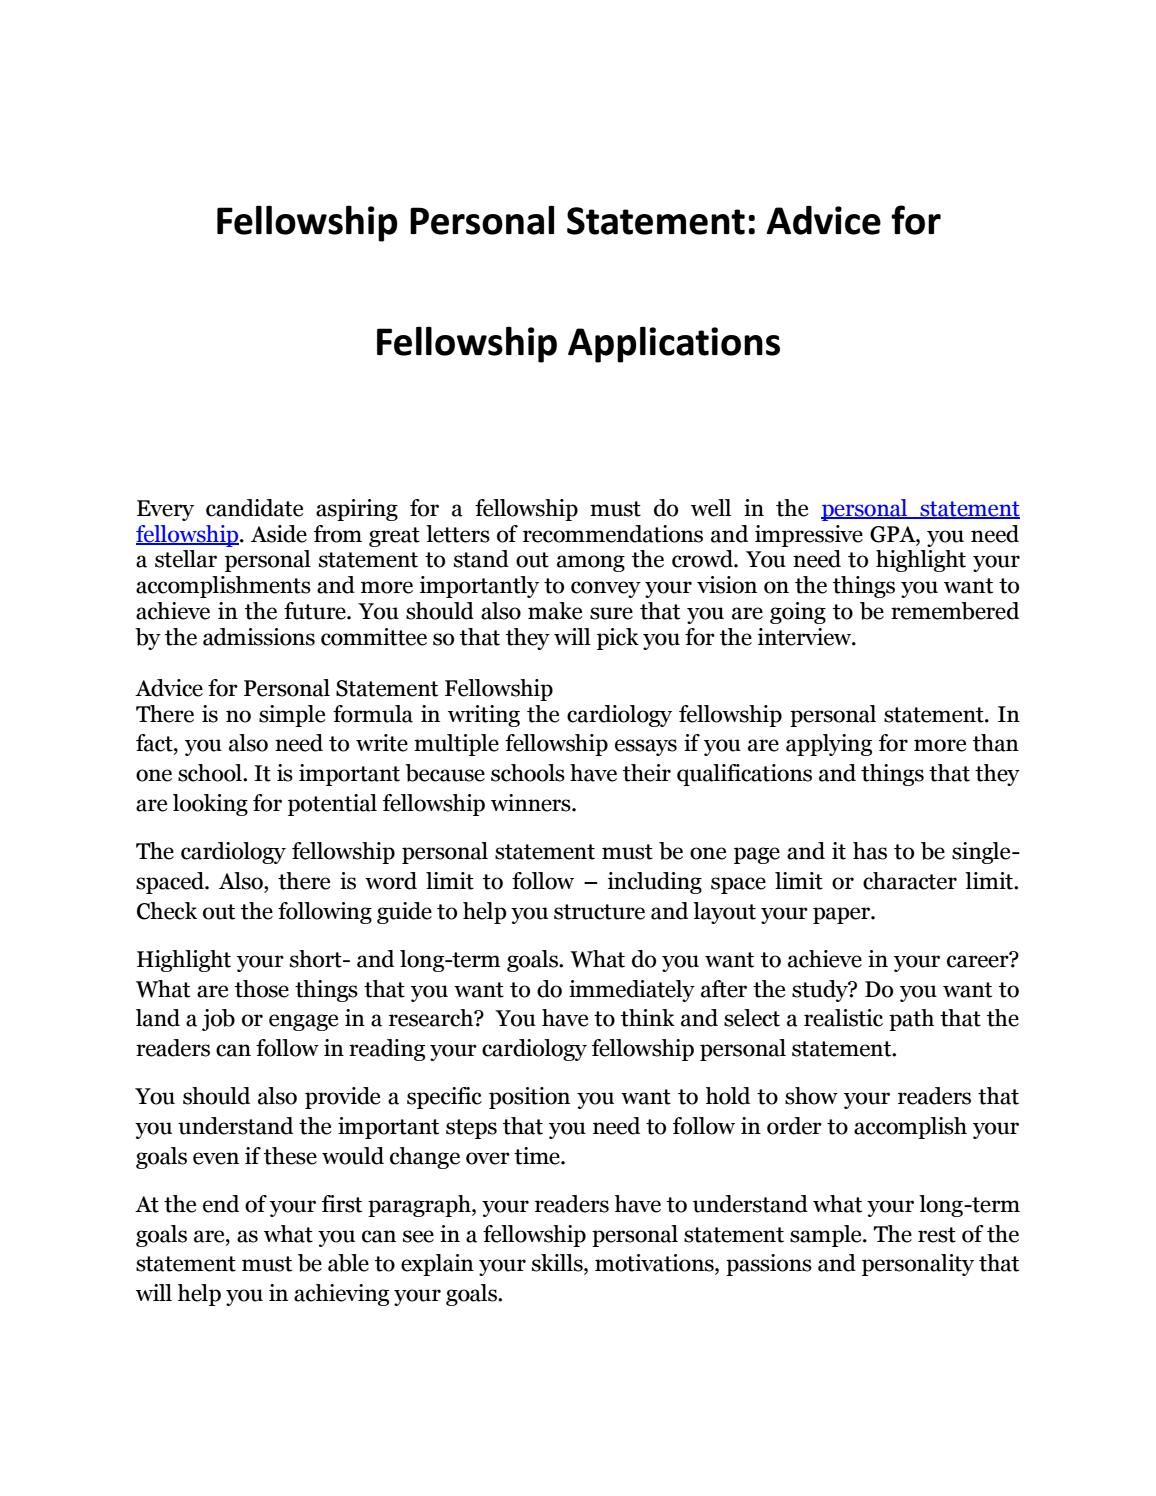 Your Complete Guide to Personal Statement Fellowship by